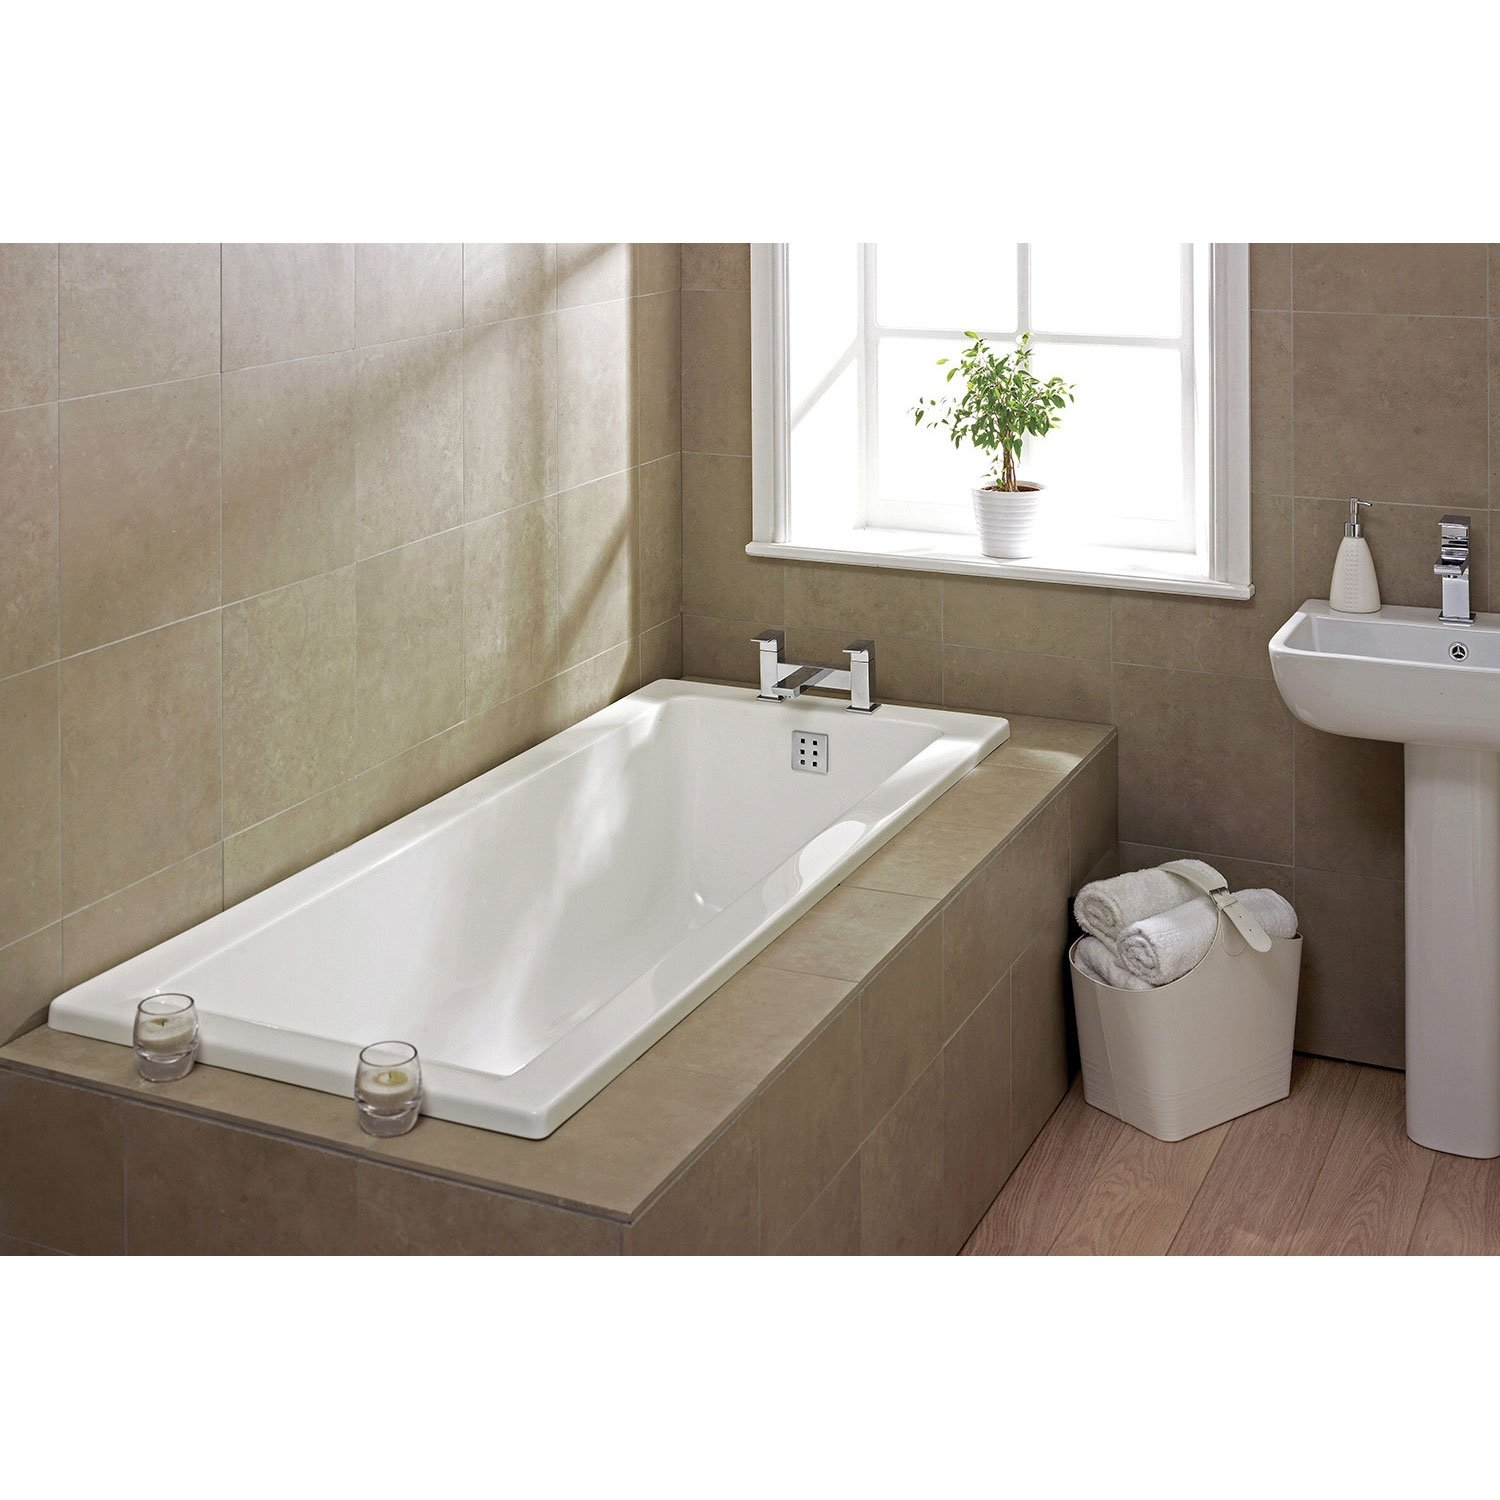 Verona Atlanta Single Ended Rectangular Bath 1500mm x 700mm - 0 Tap Hole